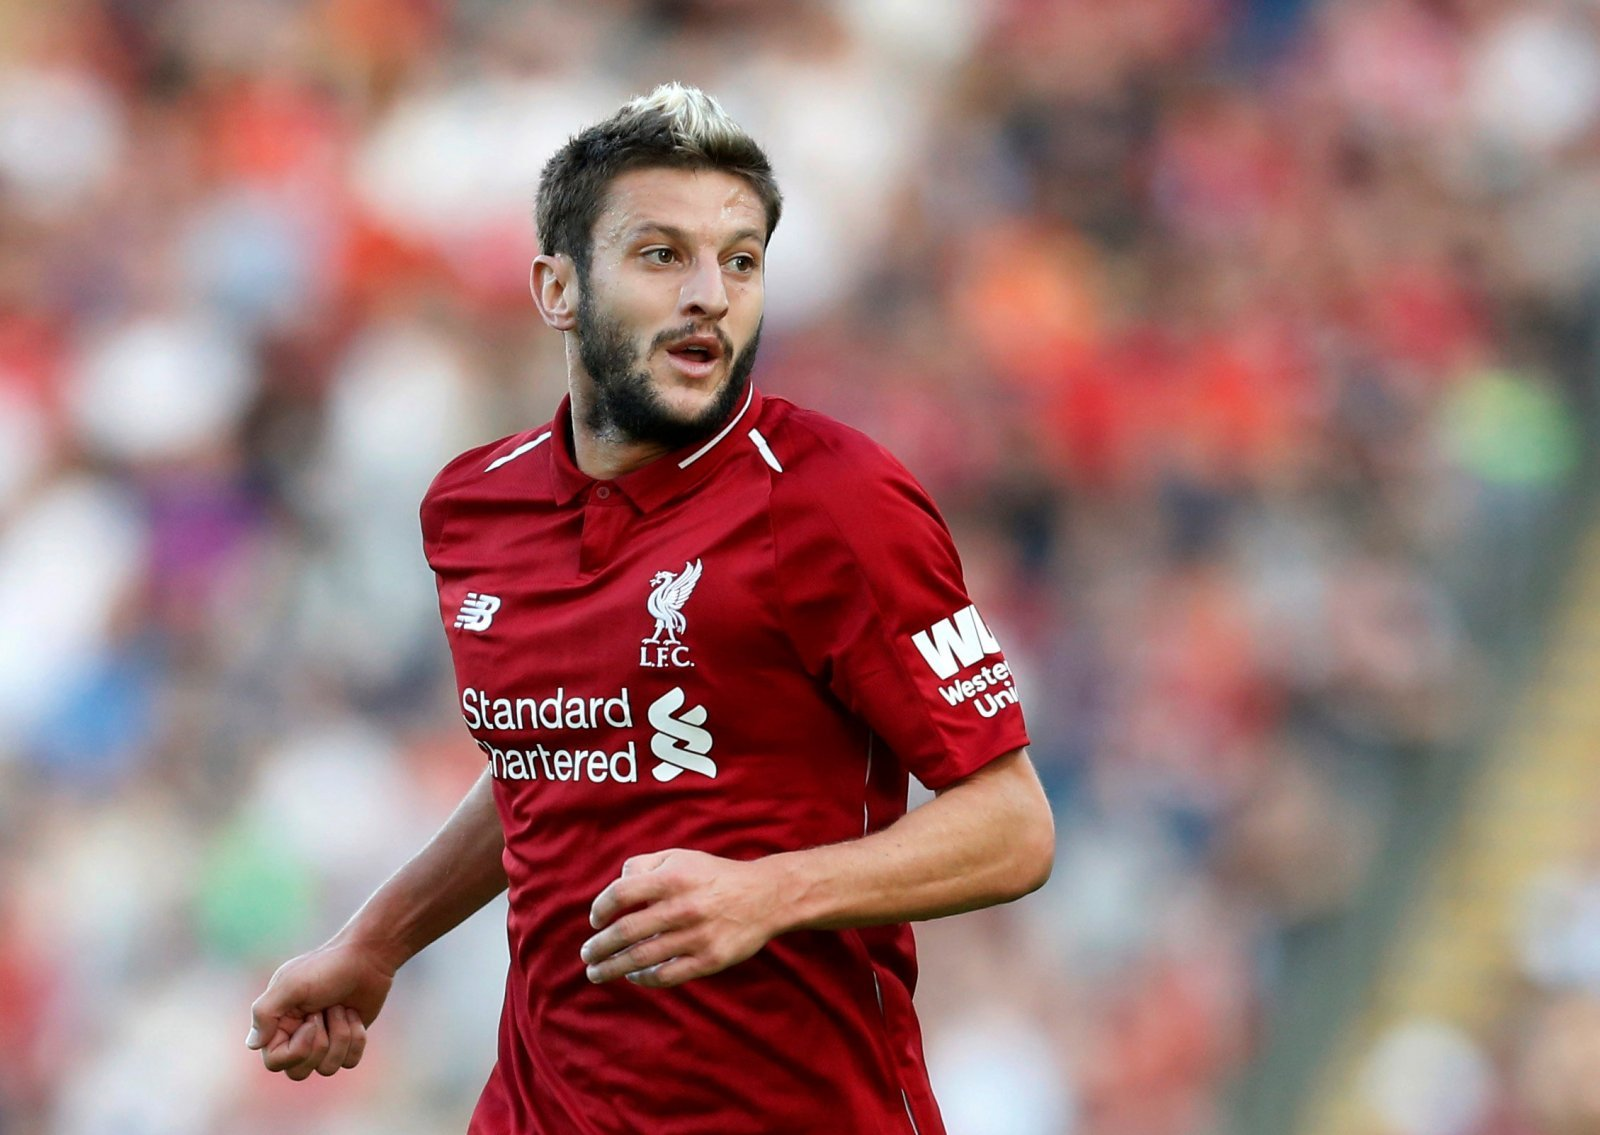 Lallana's latest injury is beyond a joke for most Liverpool fans